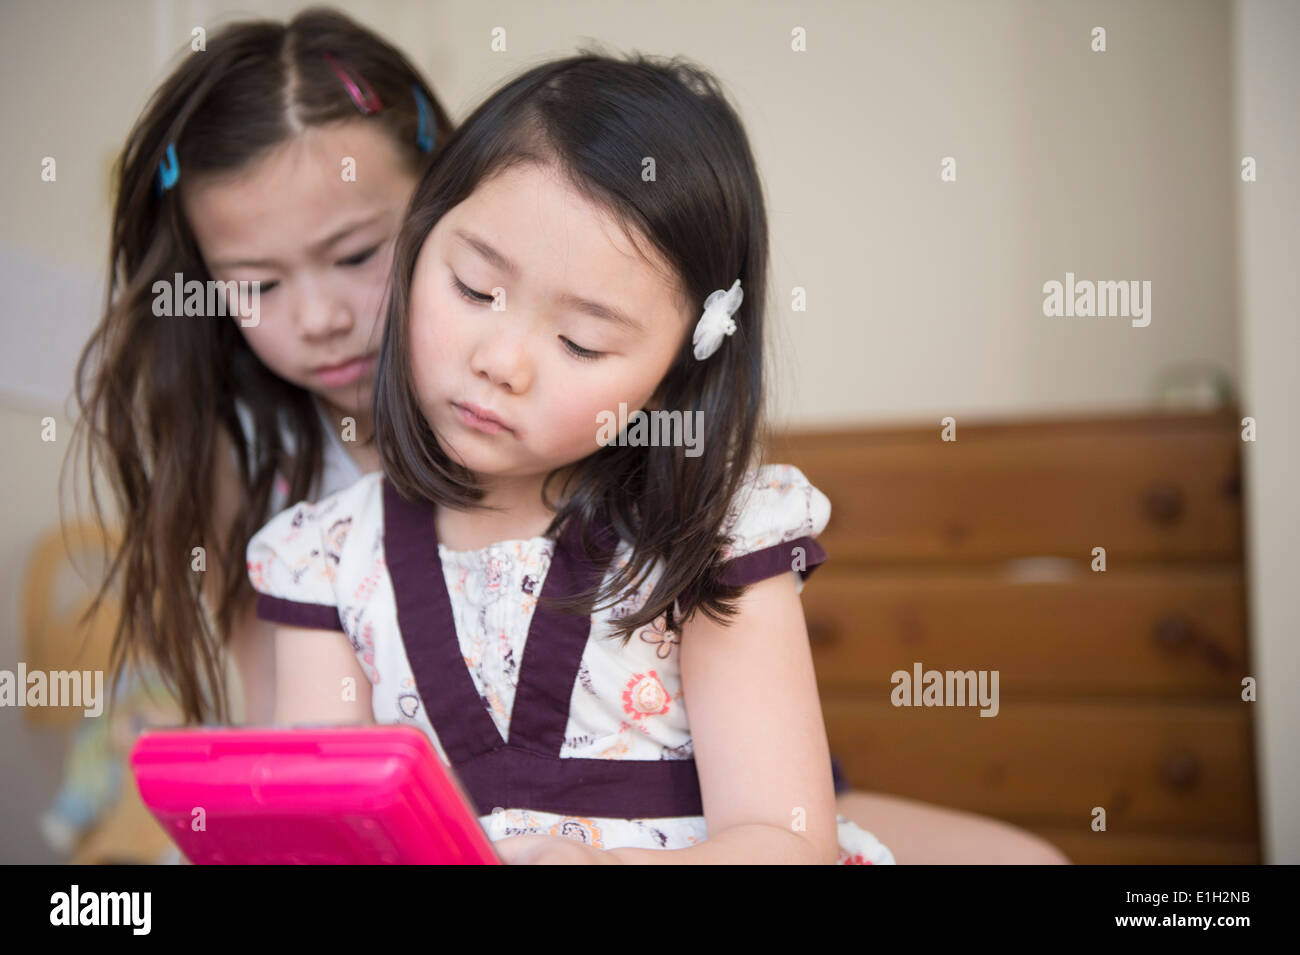 Two young female friends unhappy with one computer game - Stock Image